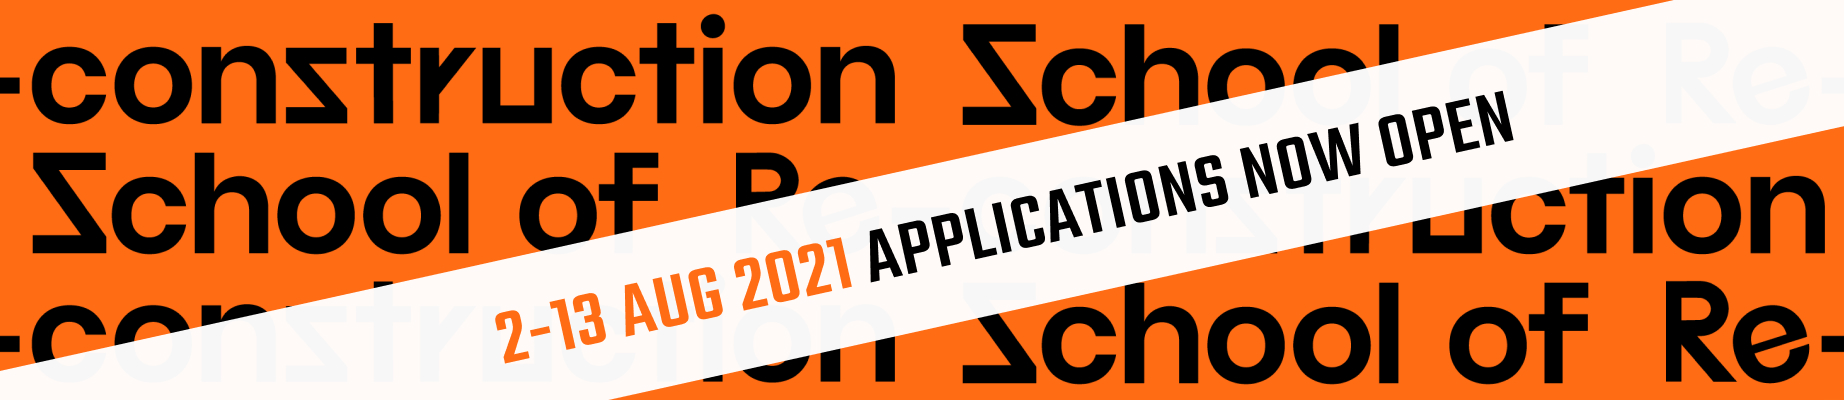 2-13 August 2021 Applications now ope